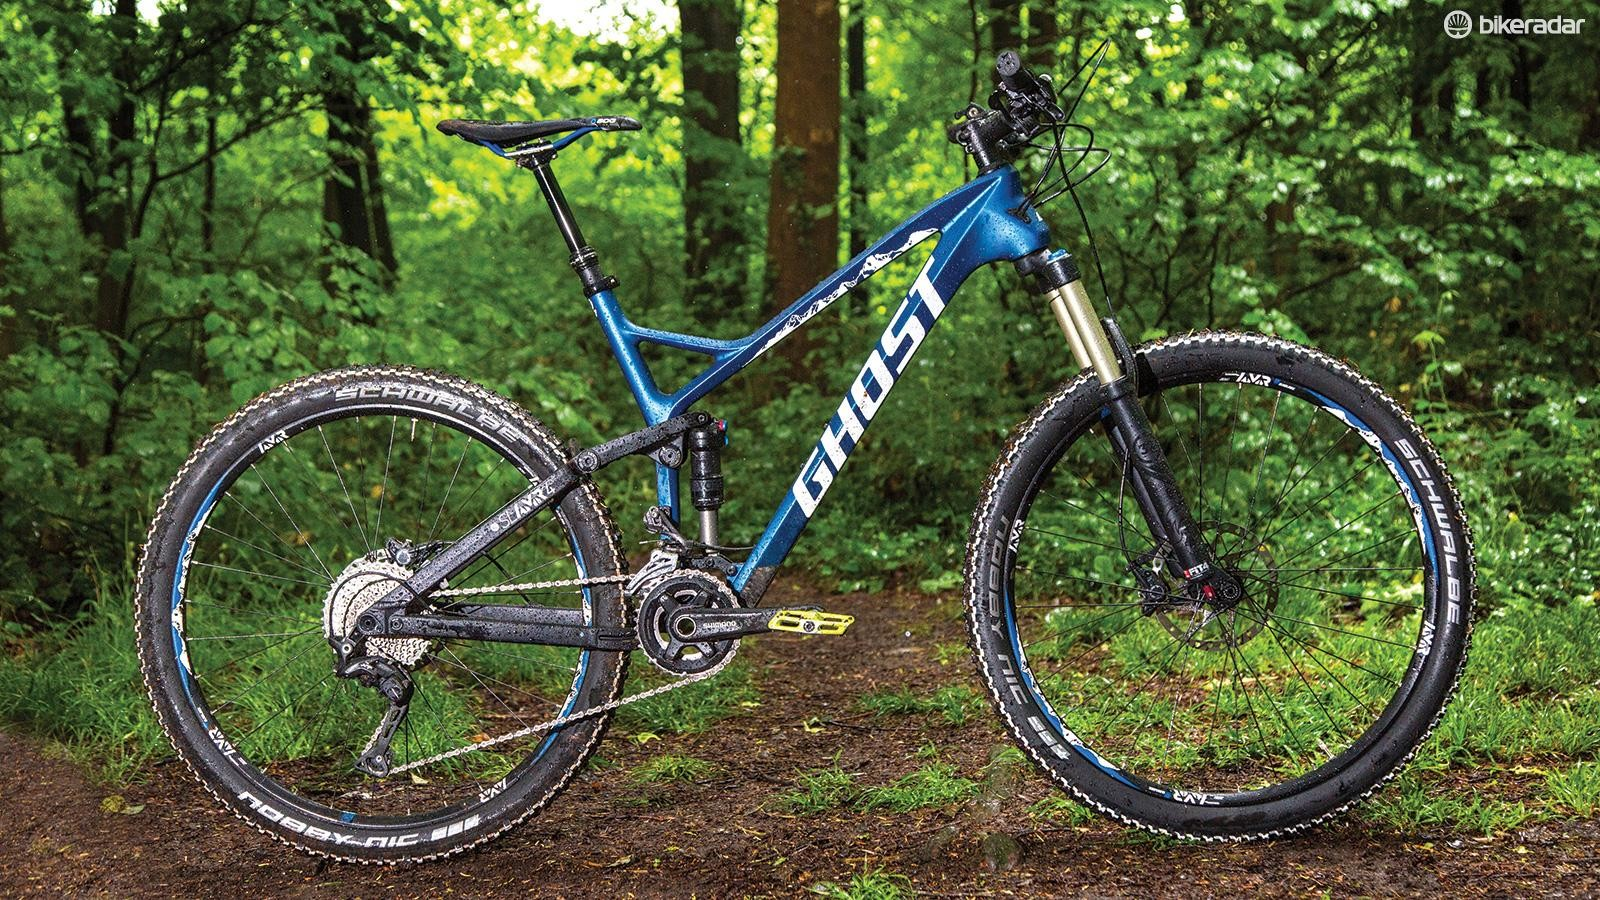 To get the best out of the SL AMR, you'll need to swap out those Schwalbe tyres